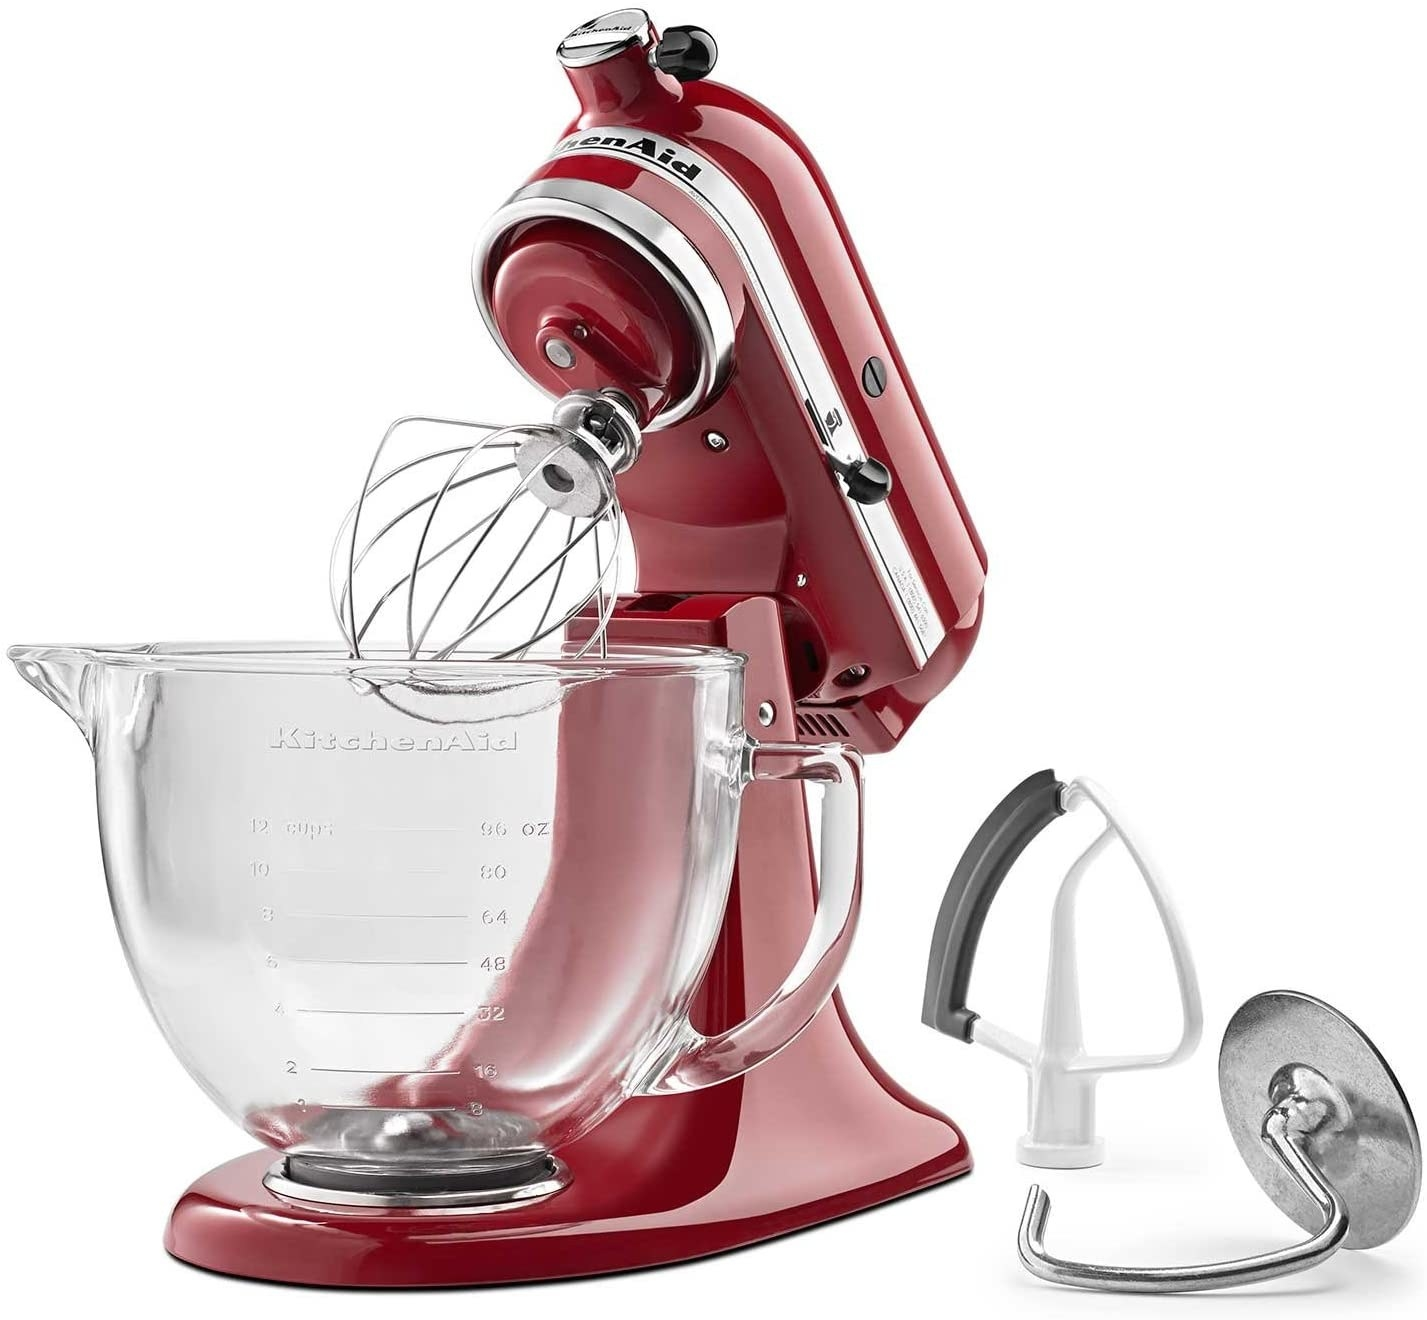 The stand mixer in red with glass mixing bowl and attachments